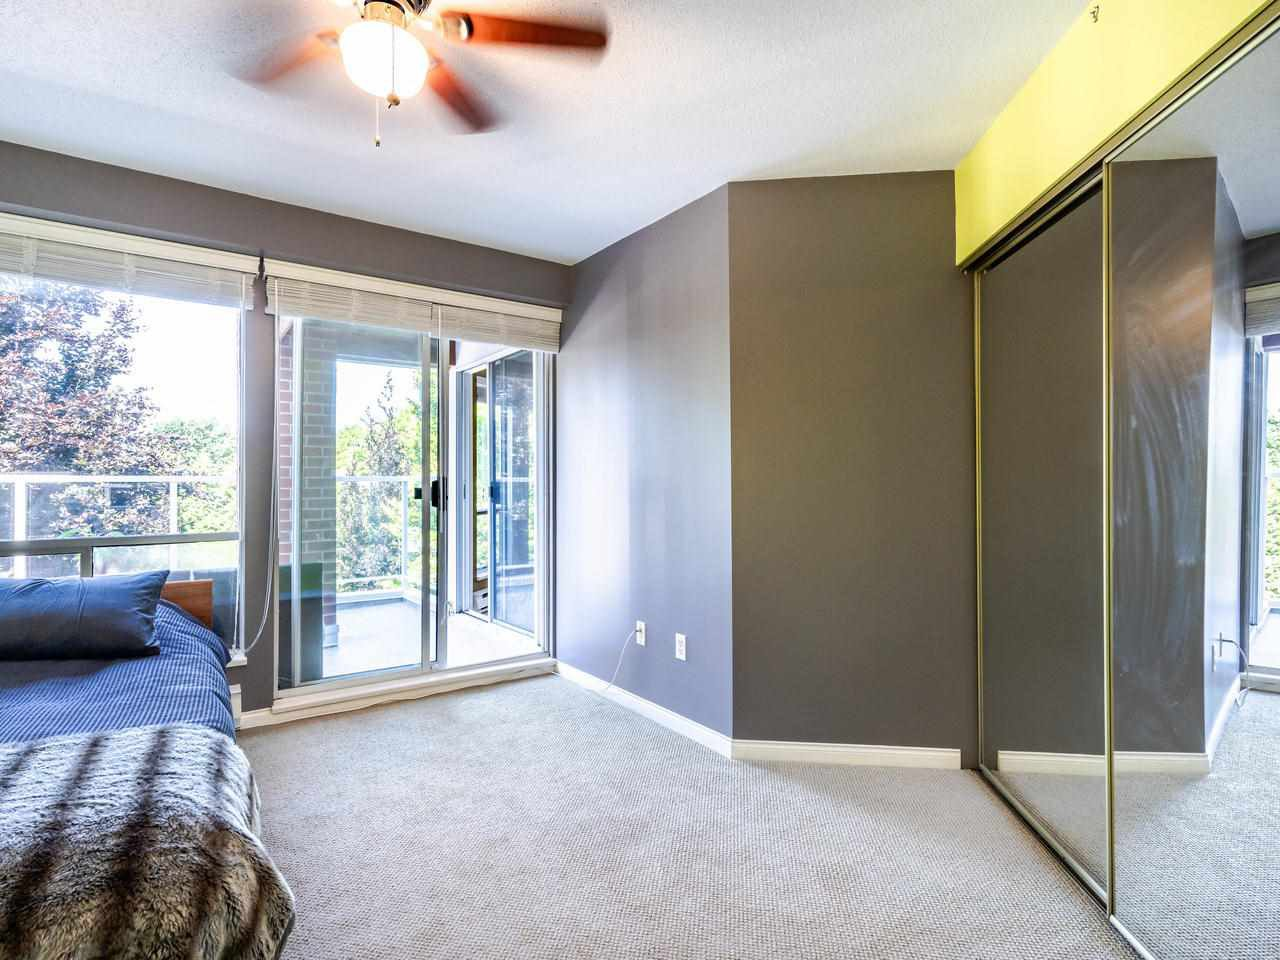 """Photo 31: Photos: 303 2288 W 12TH Avenue in Vancouver: Kitsilano Condo for sale in """"Connaught Point"""" (Vancouver West)  : MLS®# R2494985"""